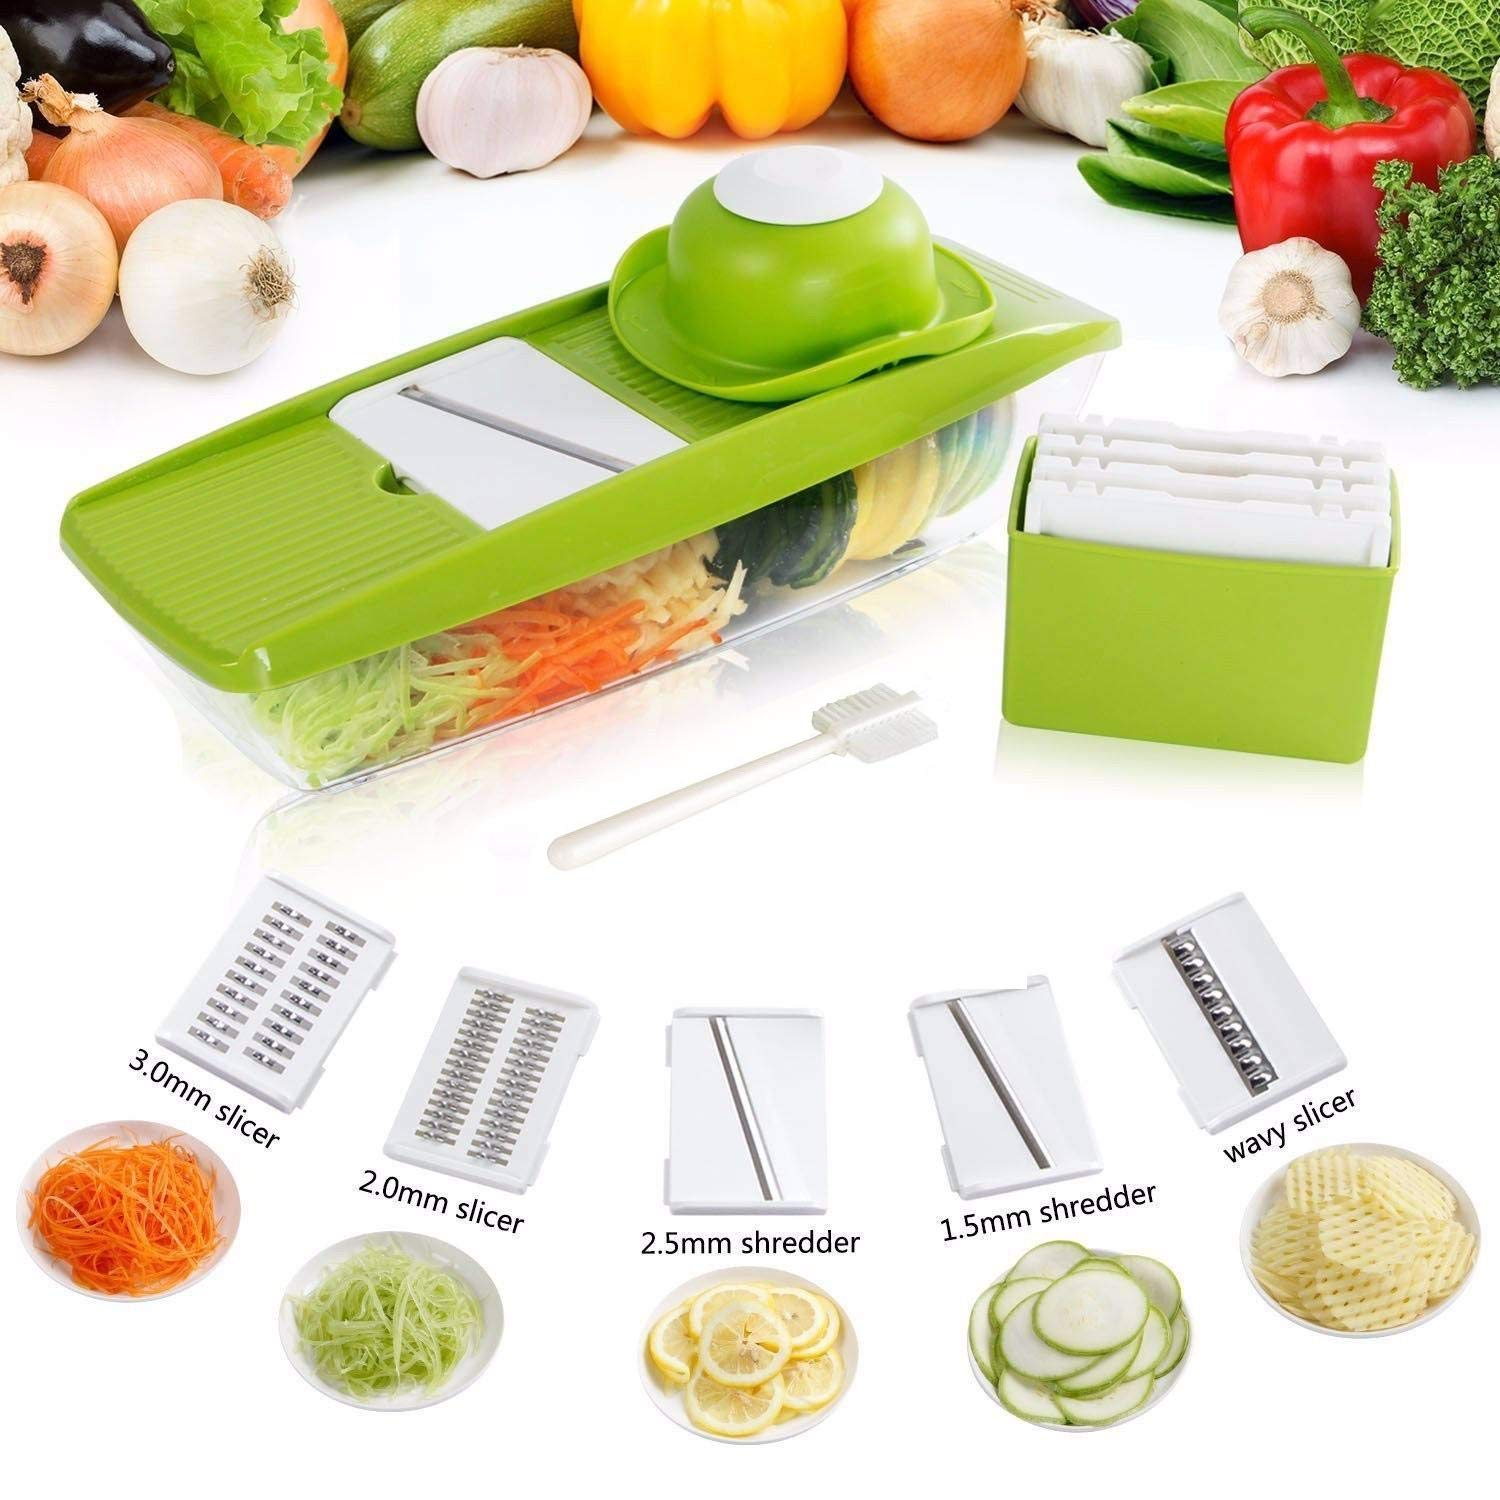 Lifewit Mandoline Vegetable Fruits Slicer Dicer, 5 Blade Veggie Cutter with Guard and Cleaning Brush, Vegetable Shredder Cheese Chopper Grater for Onions Potatos Zuchinni Fries